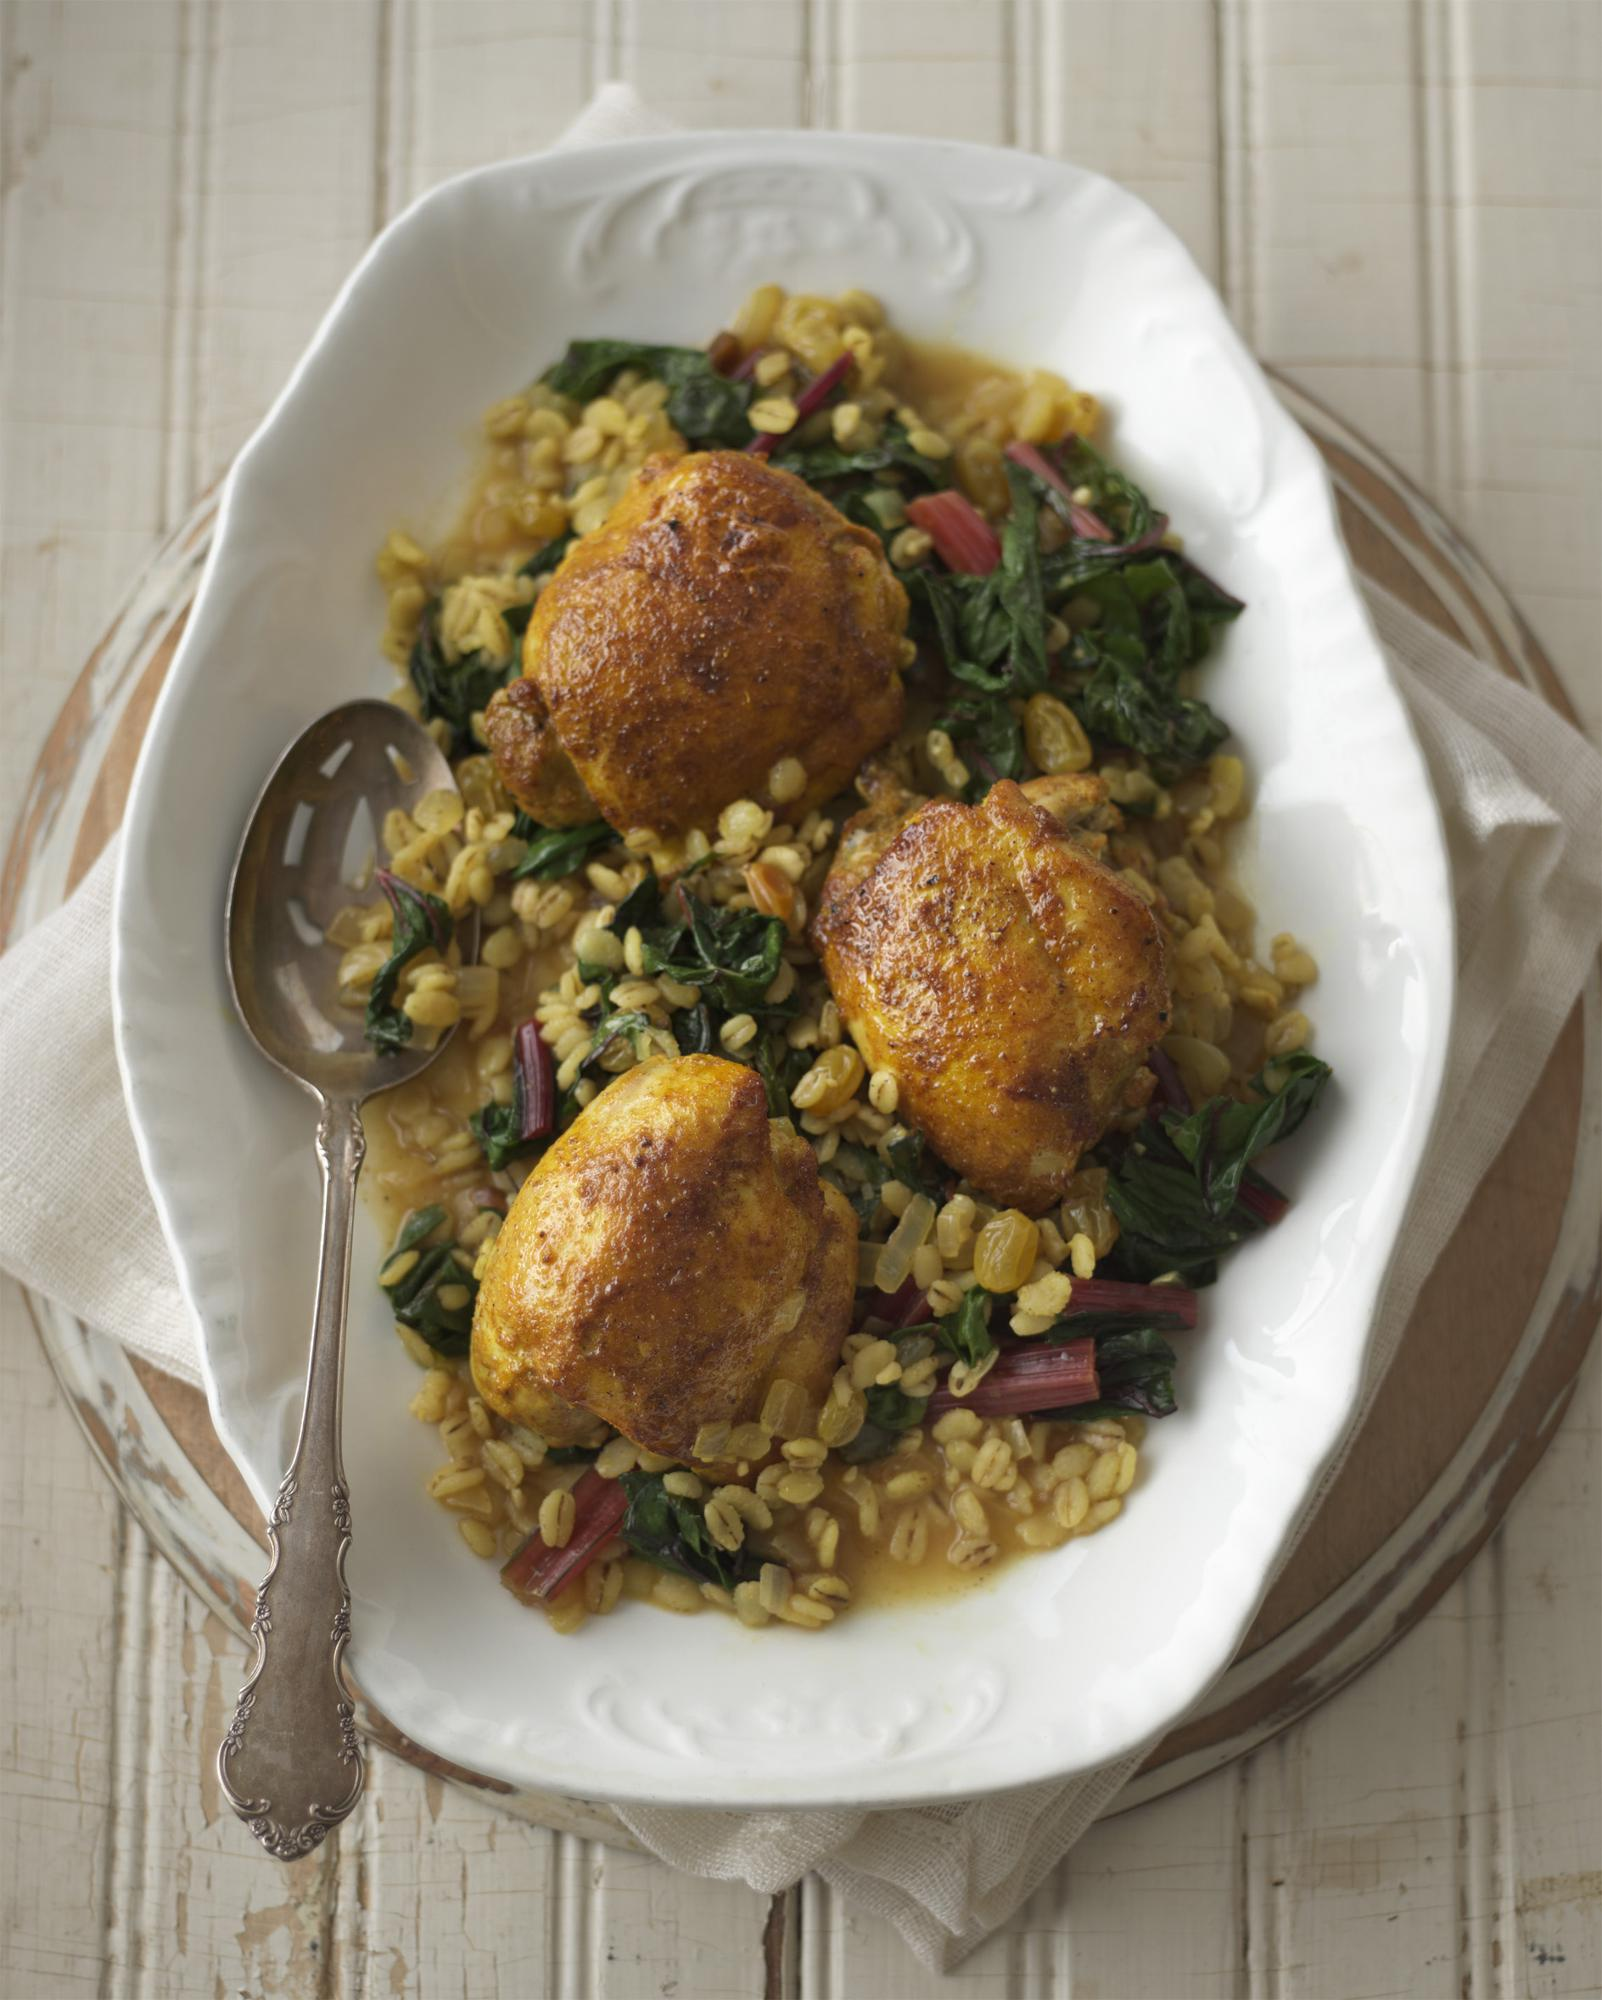 Barley & Greens with Boneless Skinless Chicken Thighs